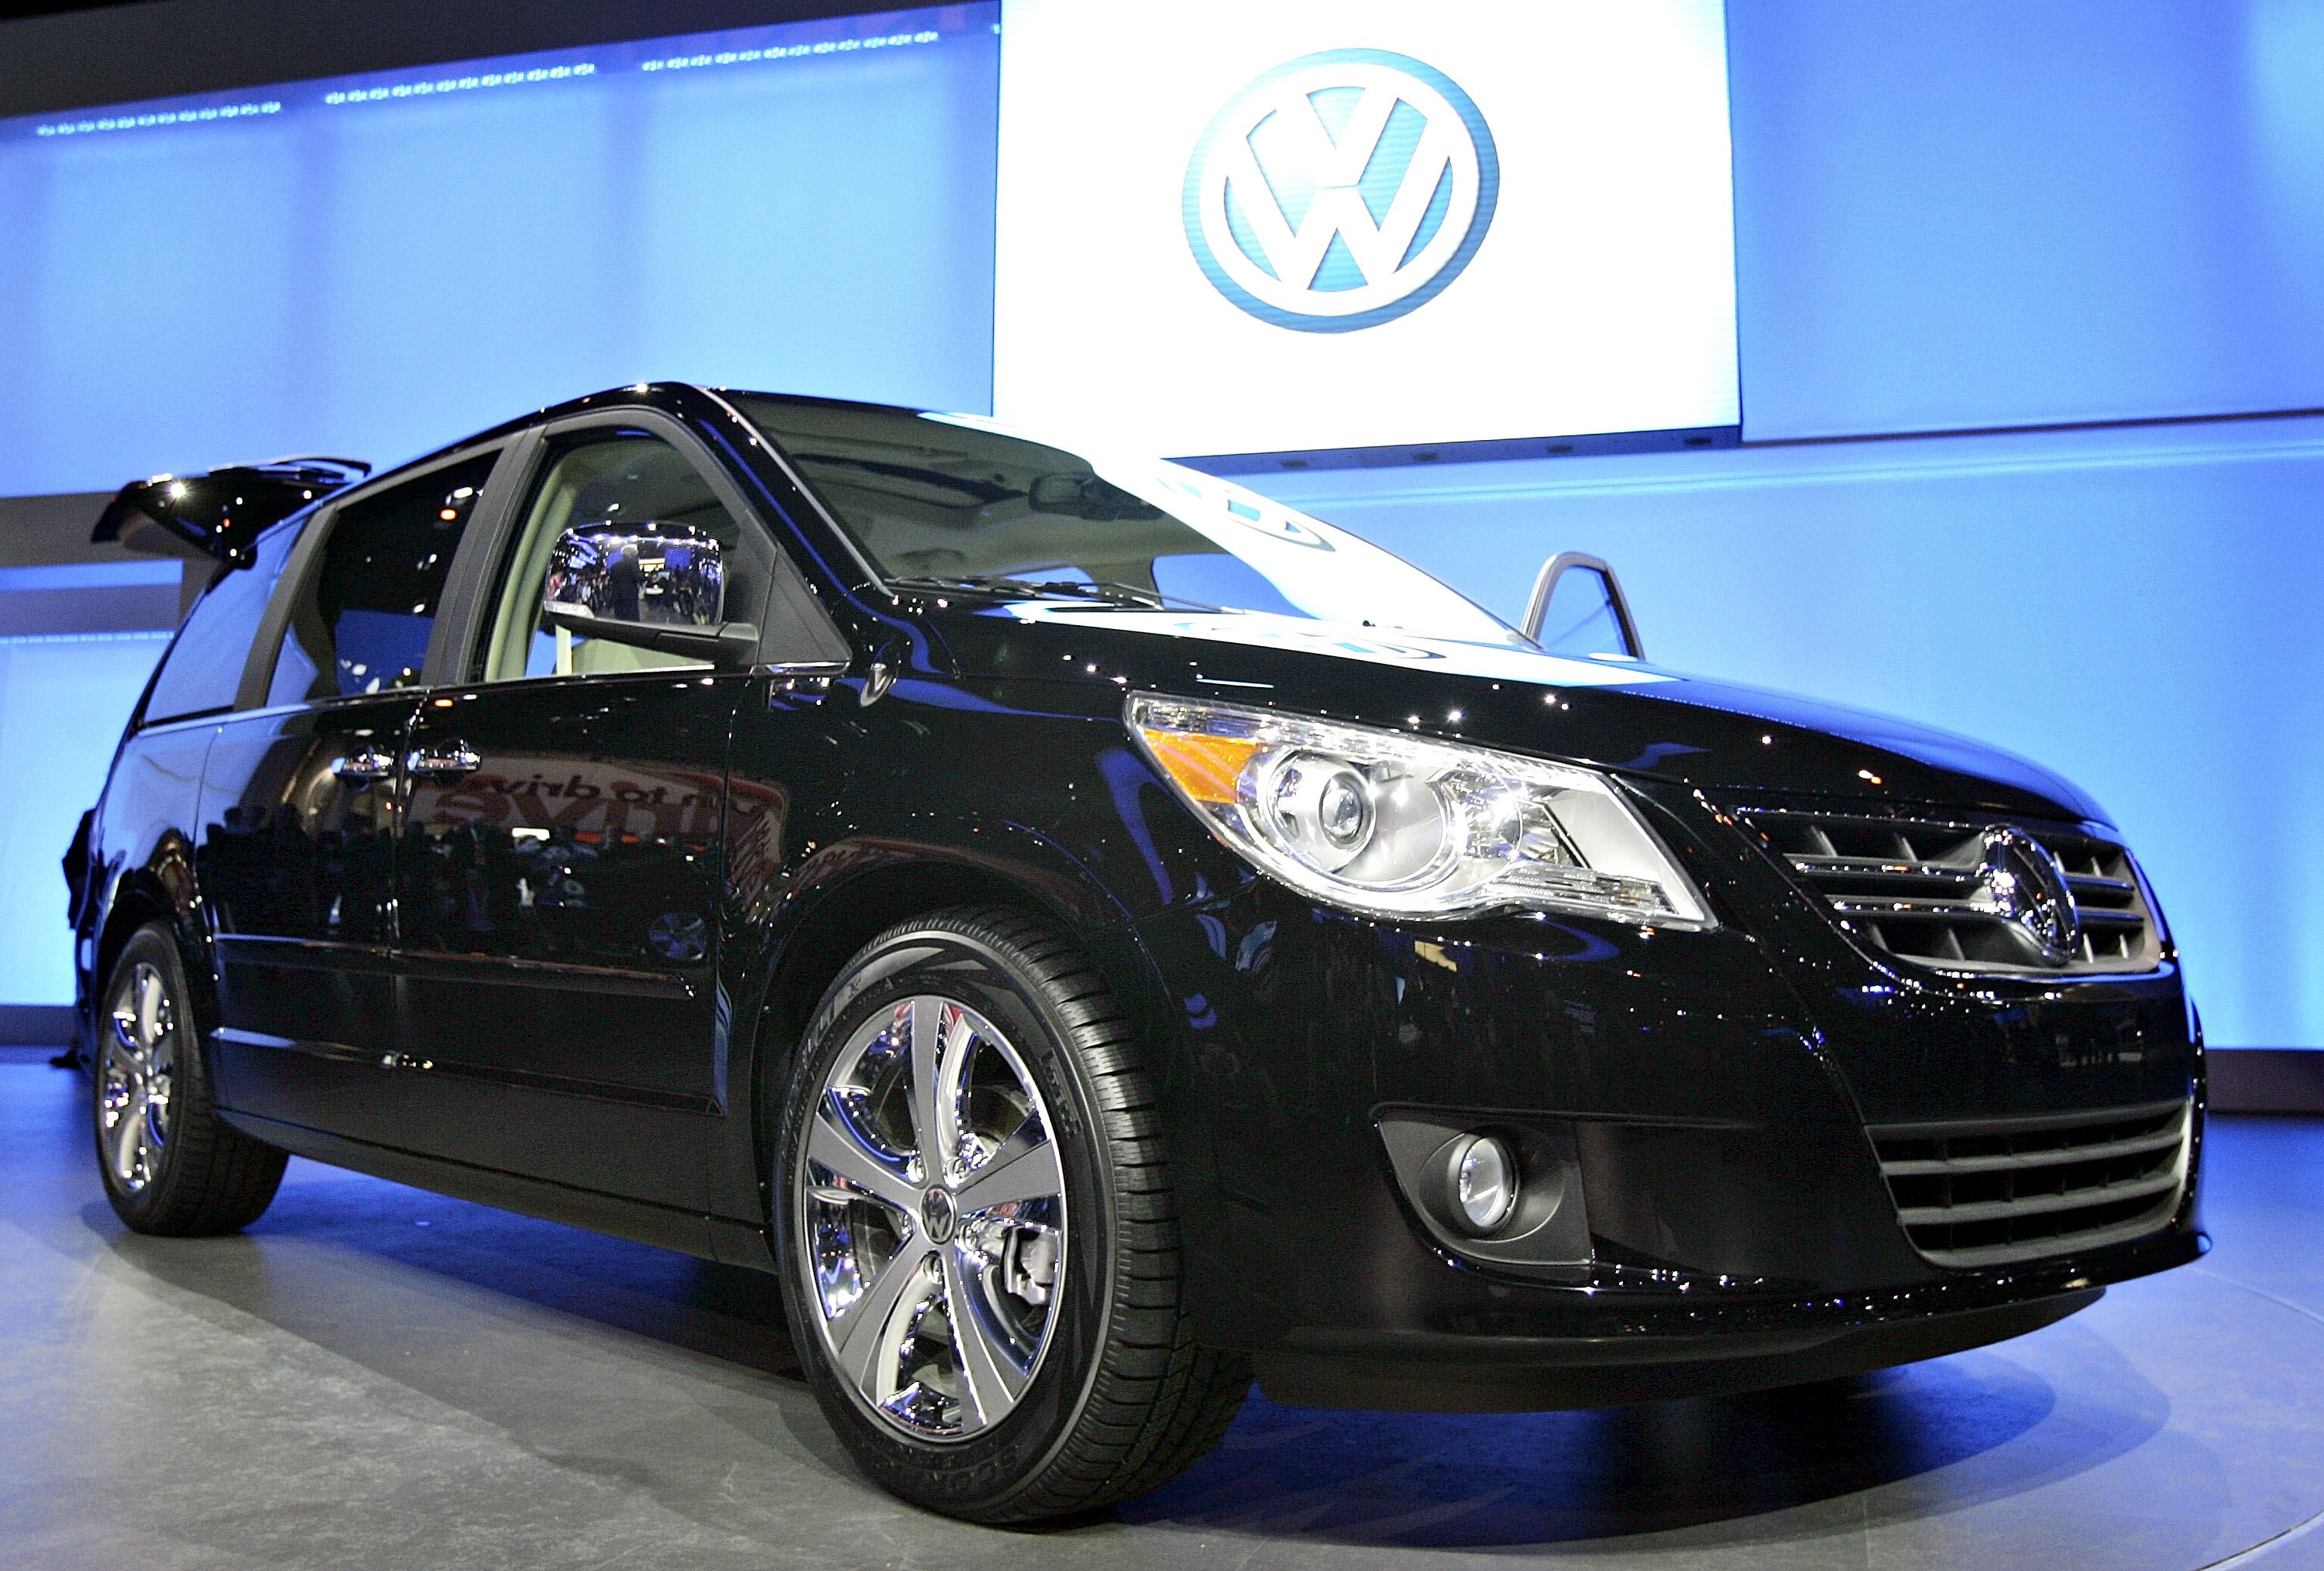 The 2009 Volkswagen Routan is introduced at the Chicago Auto Show in Chicago, Illinois, U.S., during a media preview on Wednesday, Feb. 6, 2008.